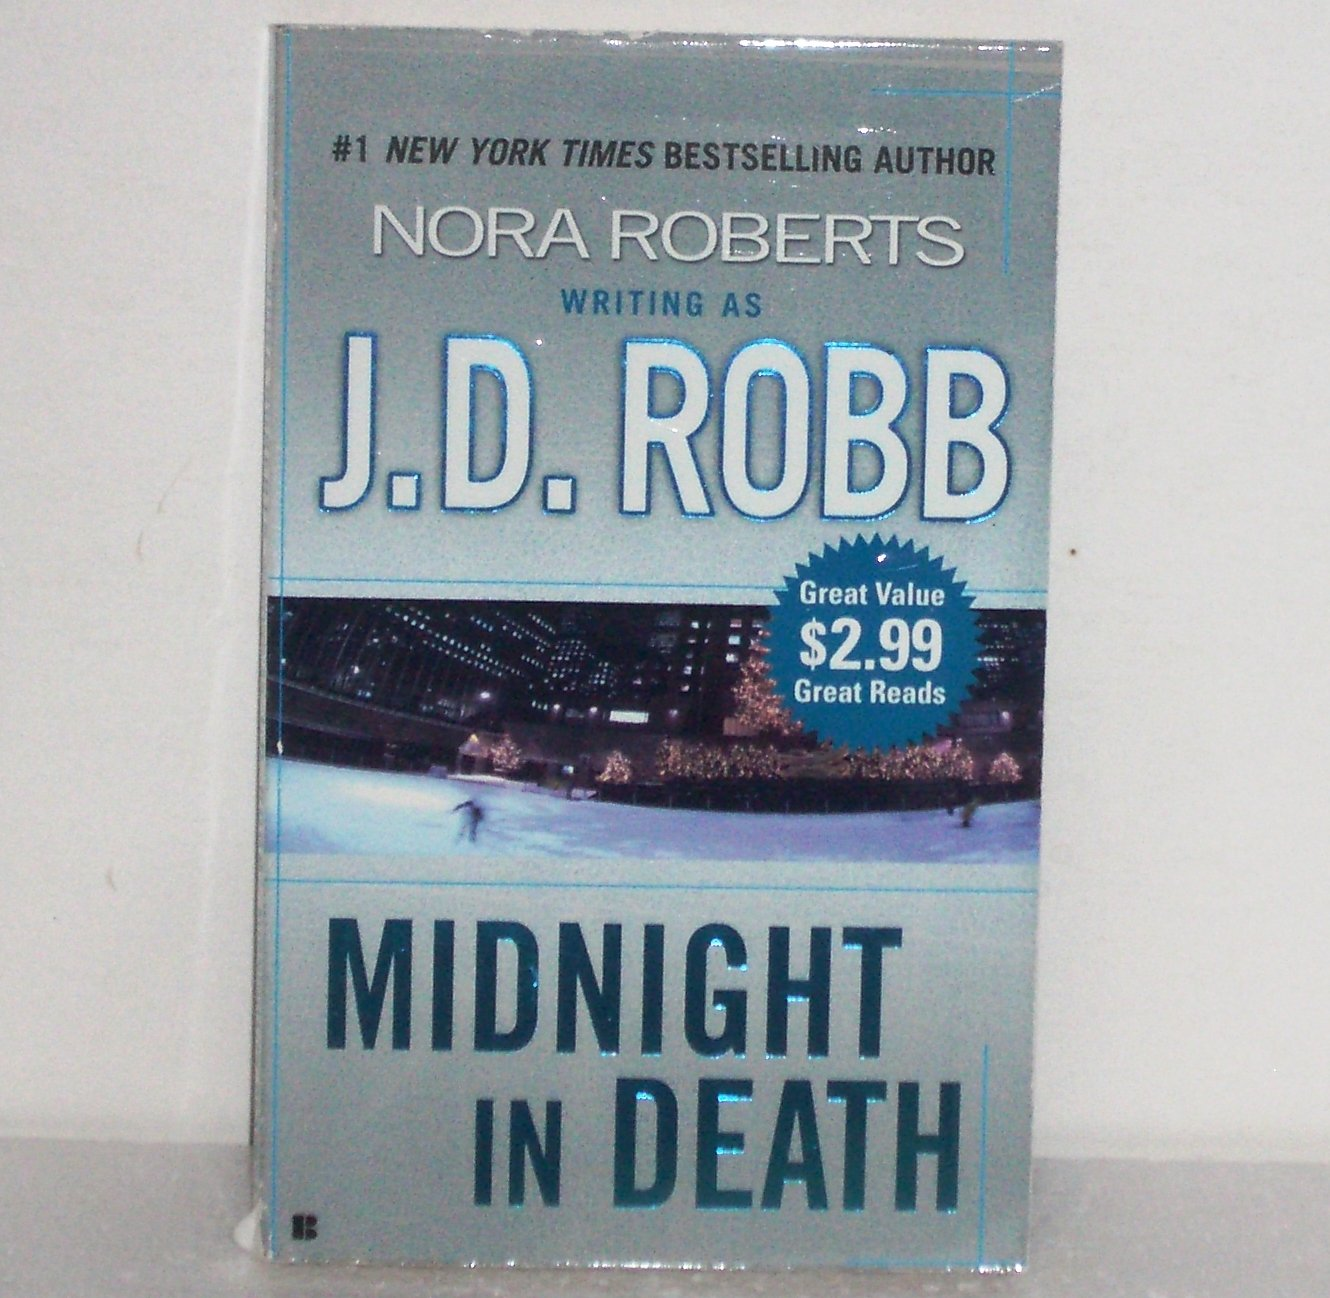 Midnight in Death by J.D. ROBB a.k.a. Nora Roberts 2005 Eve Dallas Mystery Series